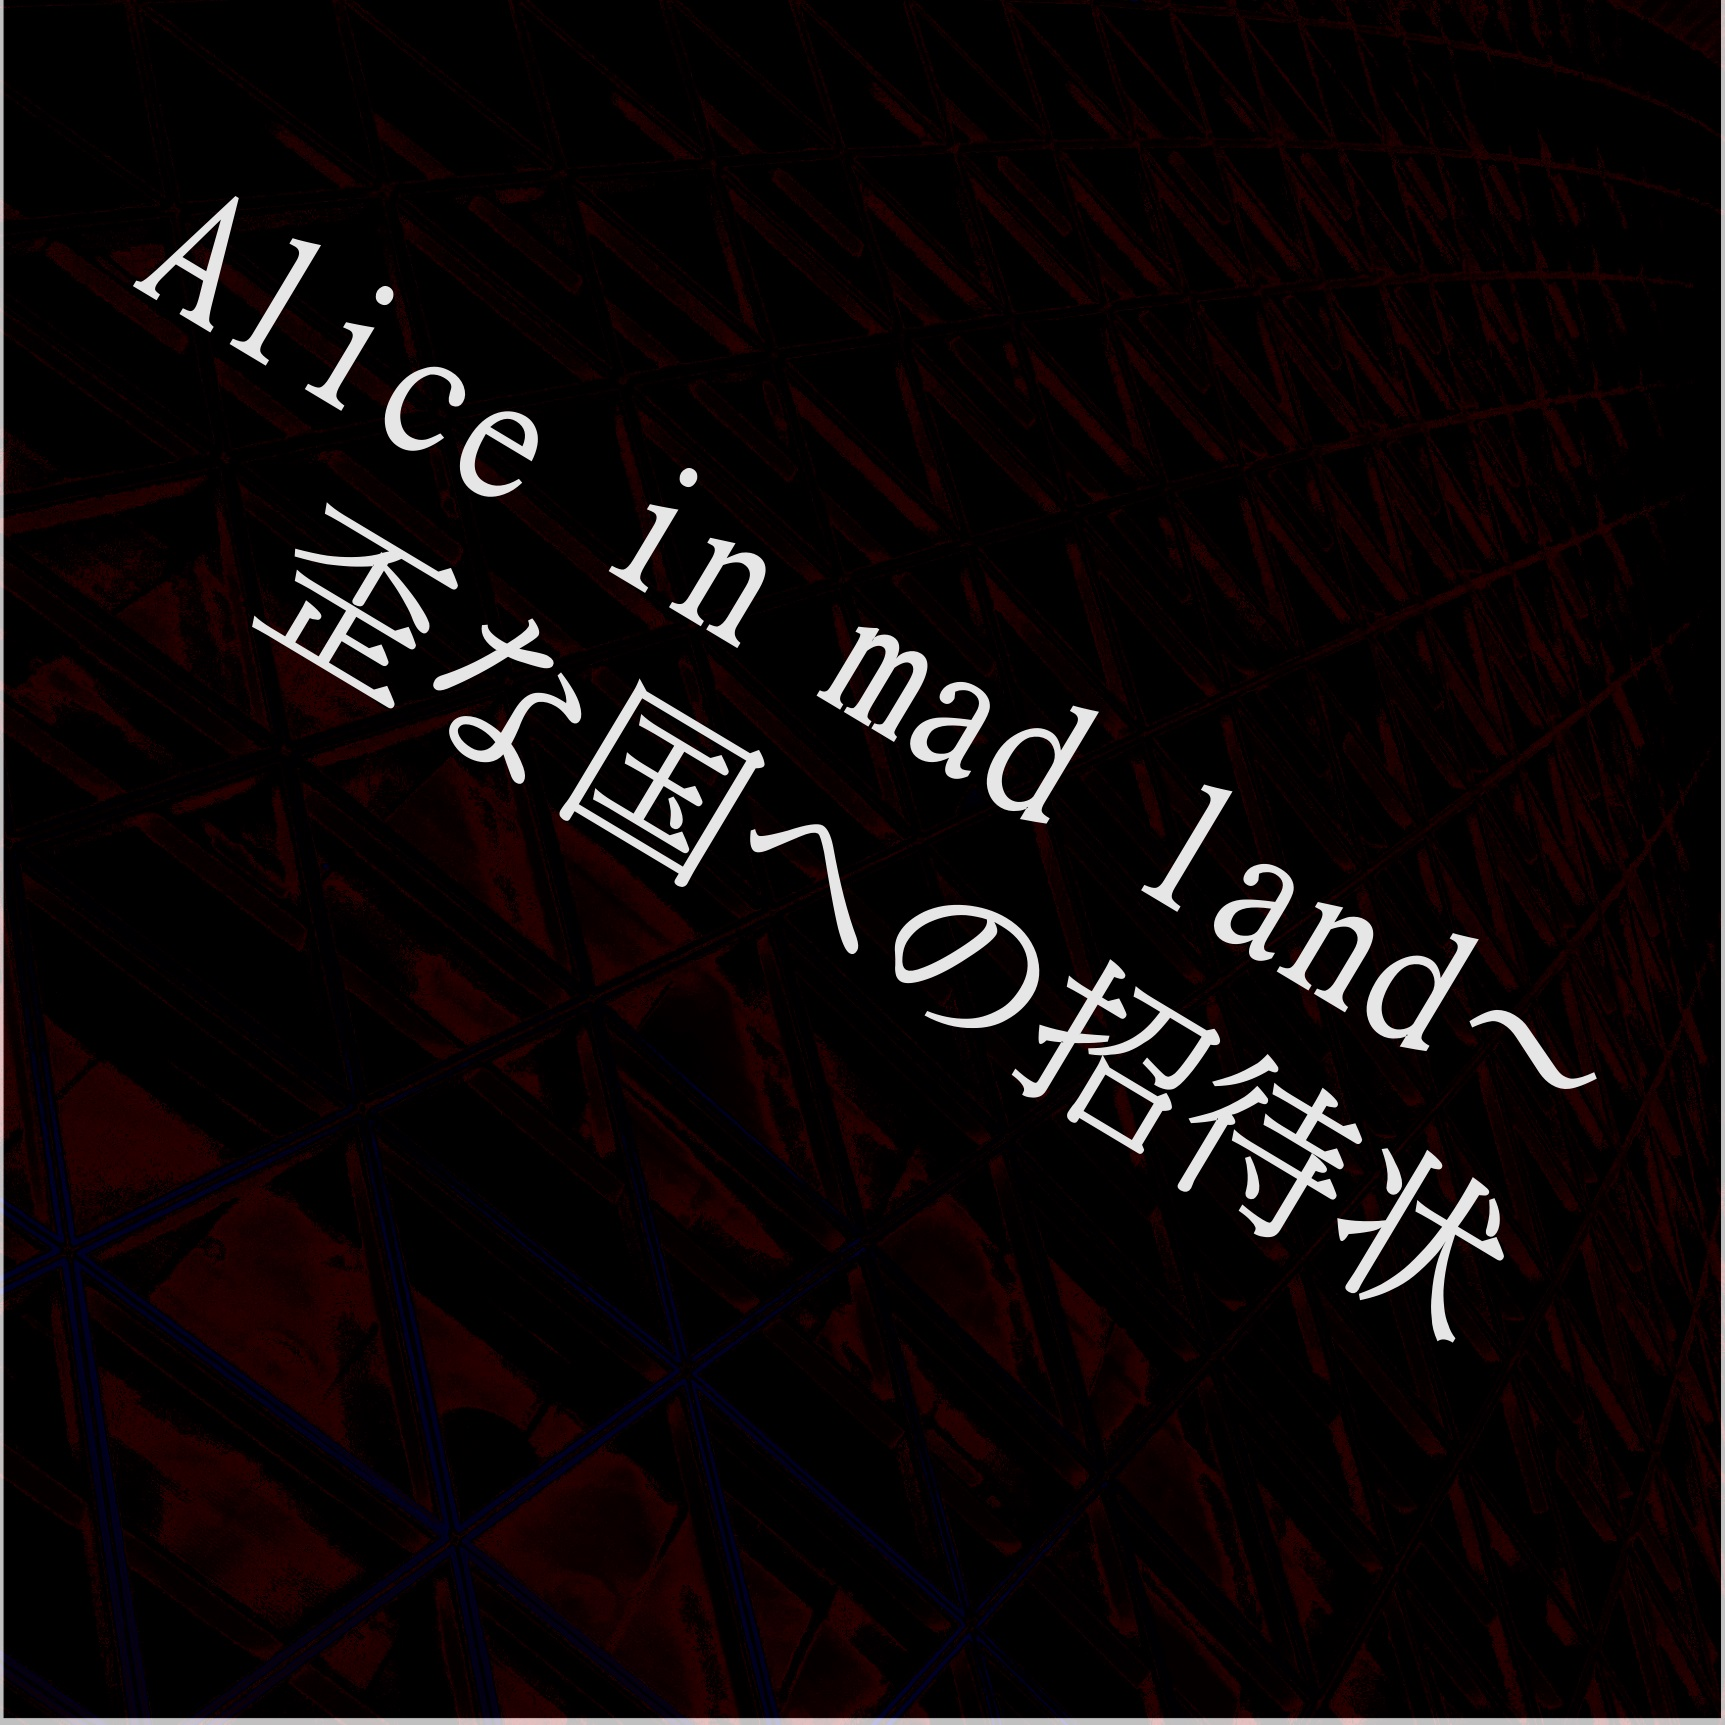 Roub の CD Alice in mad land〜歪な国への招待状